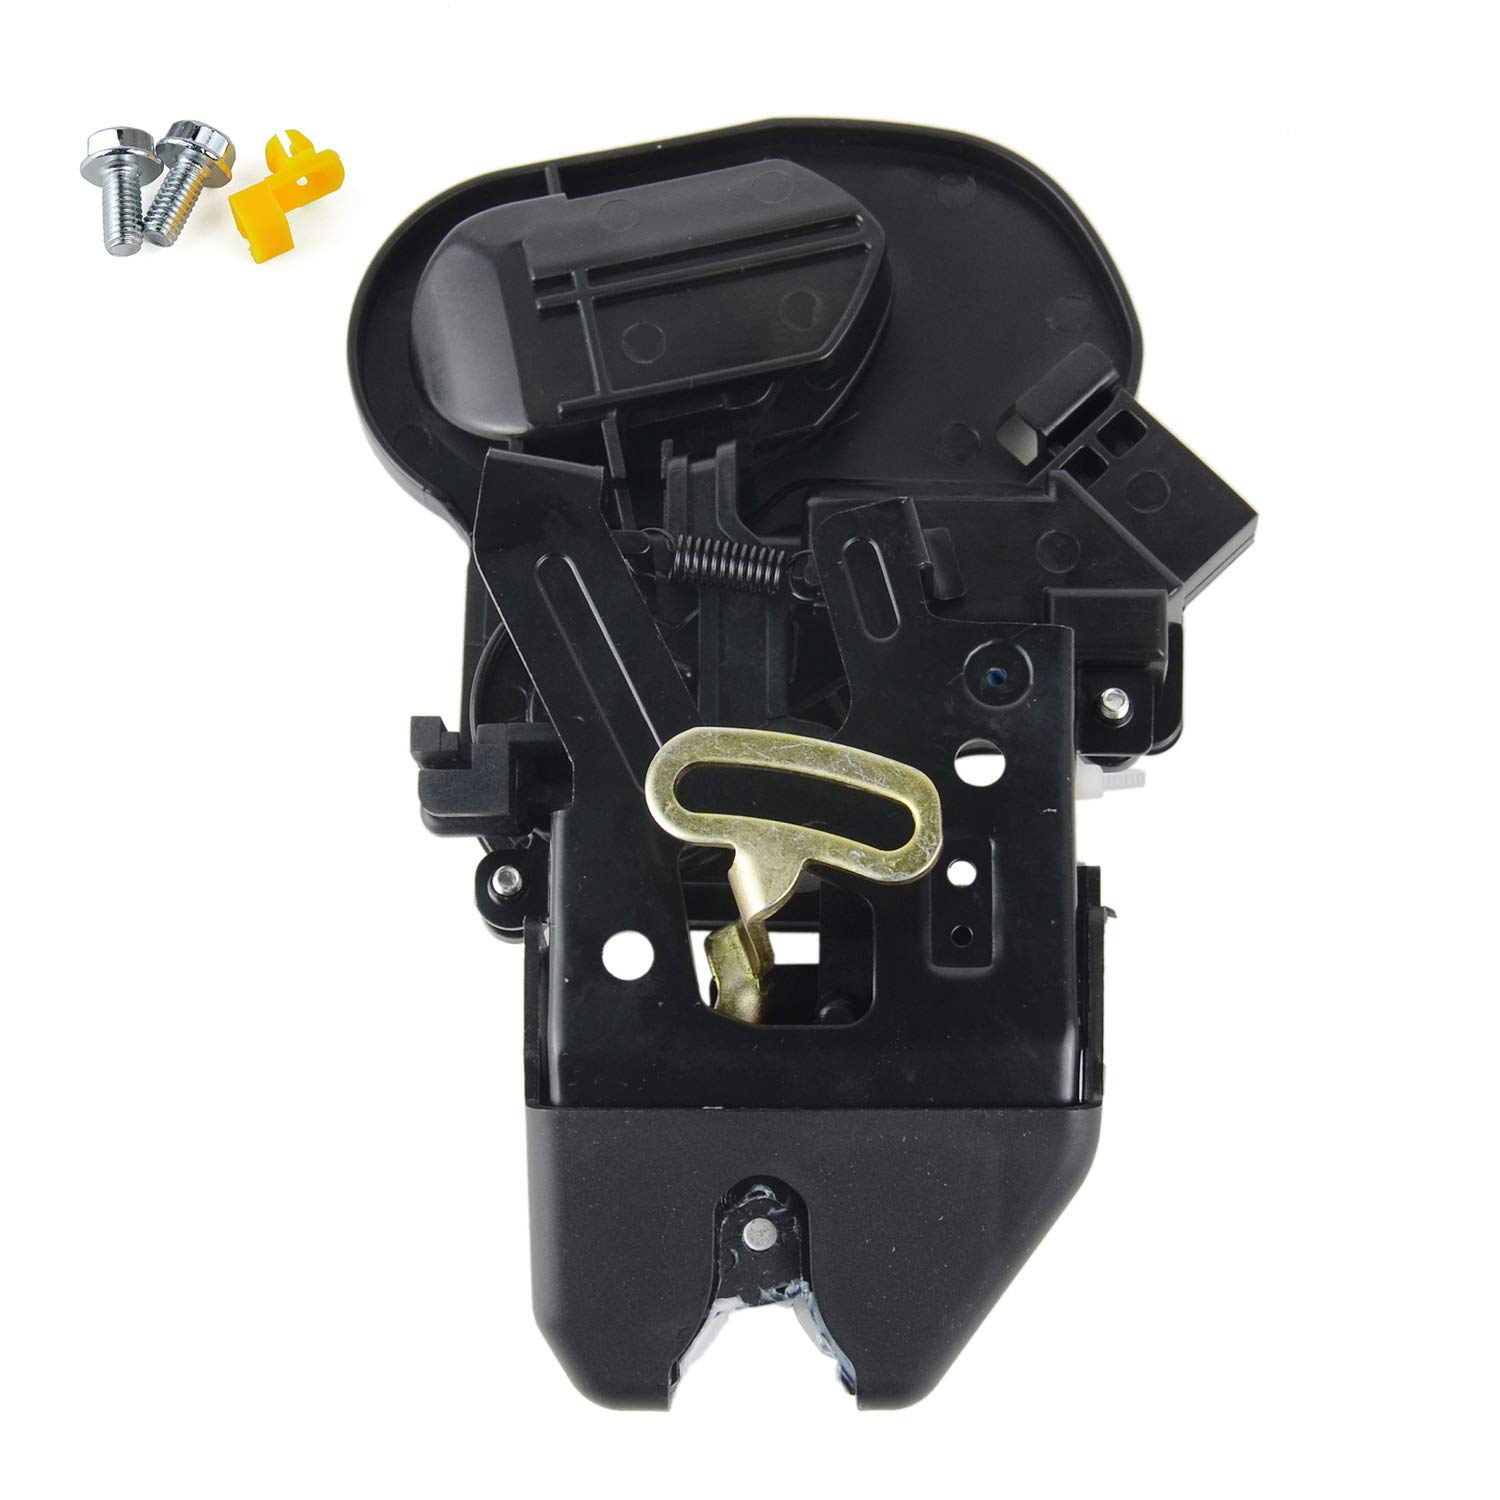 For Acura TL Trunk Lid Holder Release Latch Lock 74851-SDA-A22 2004-2008